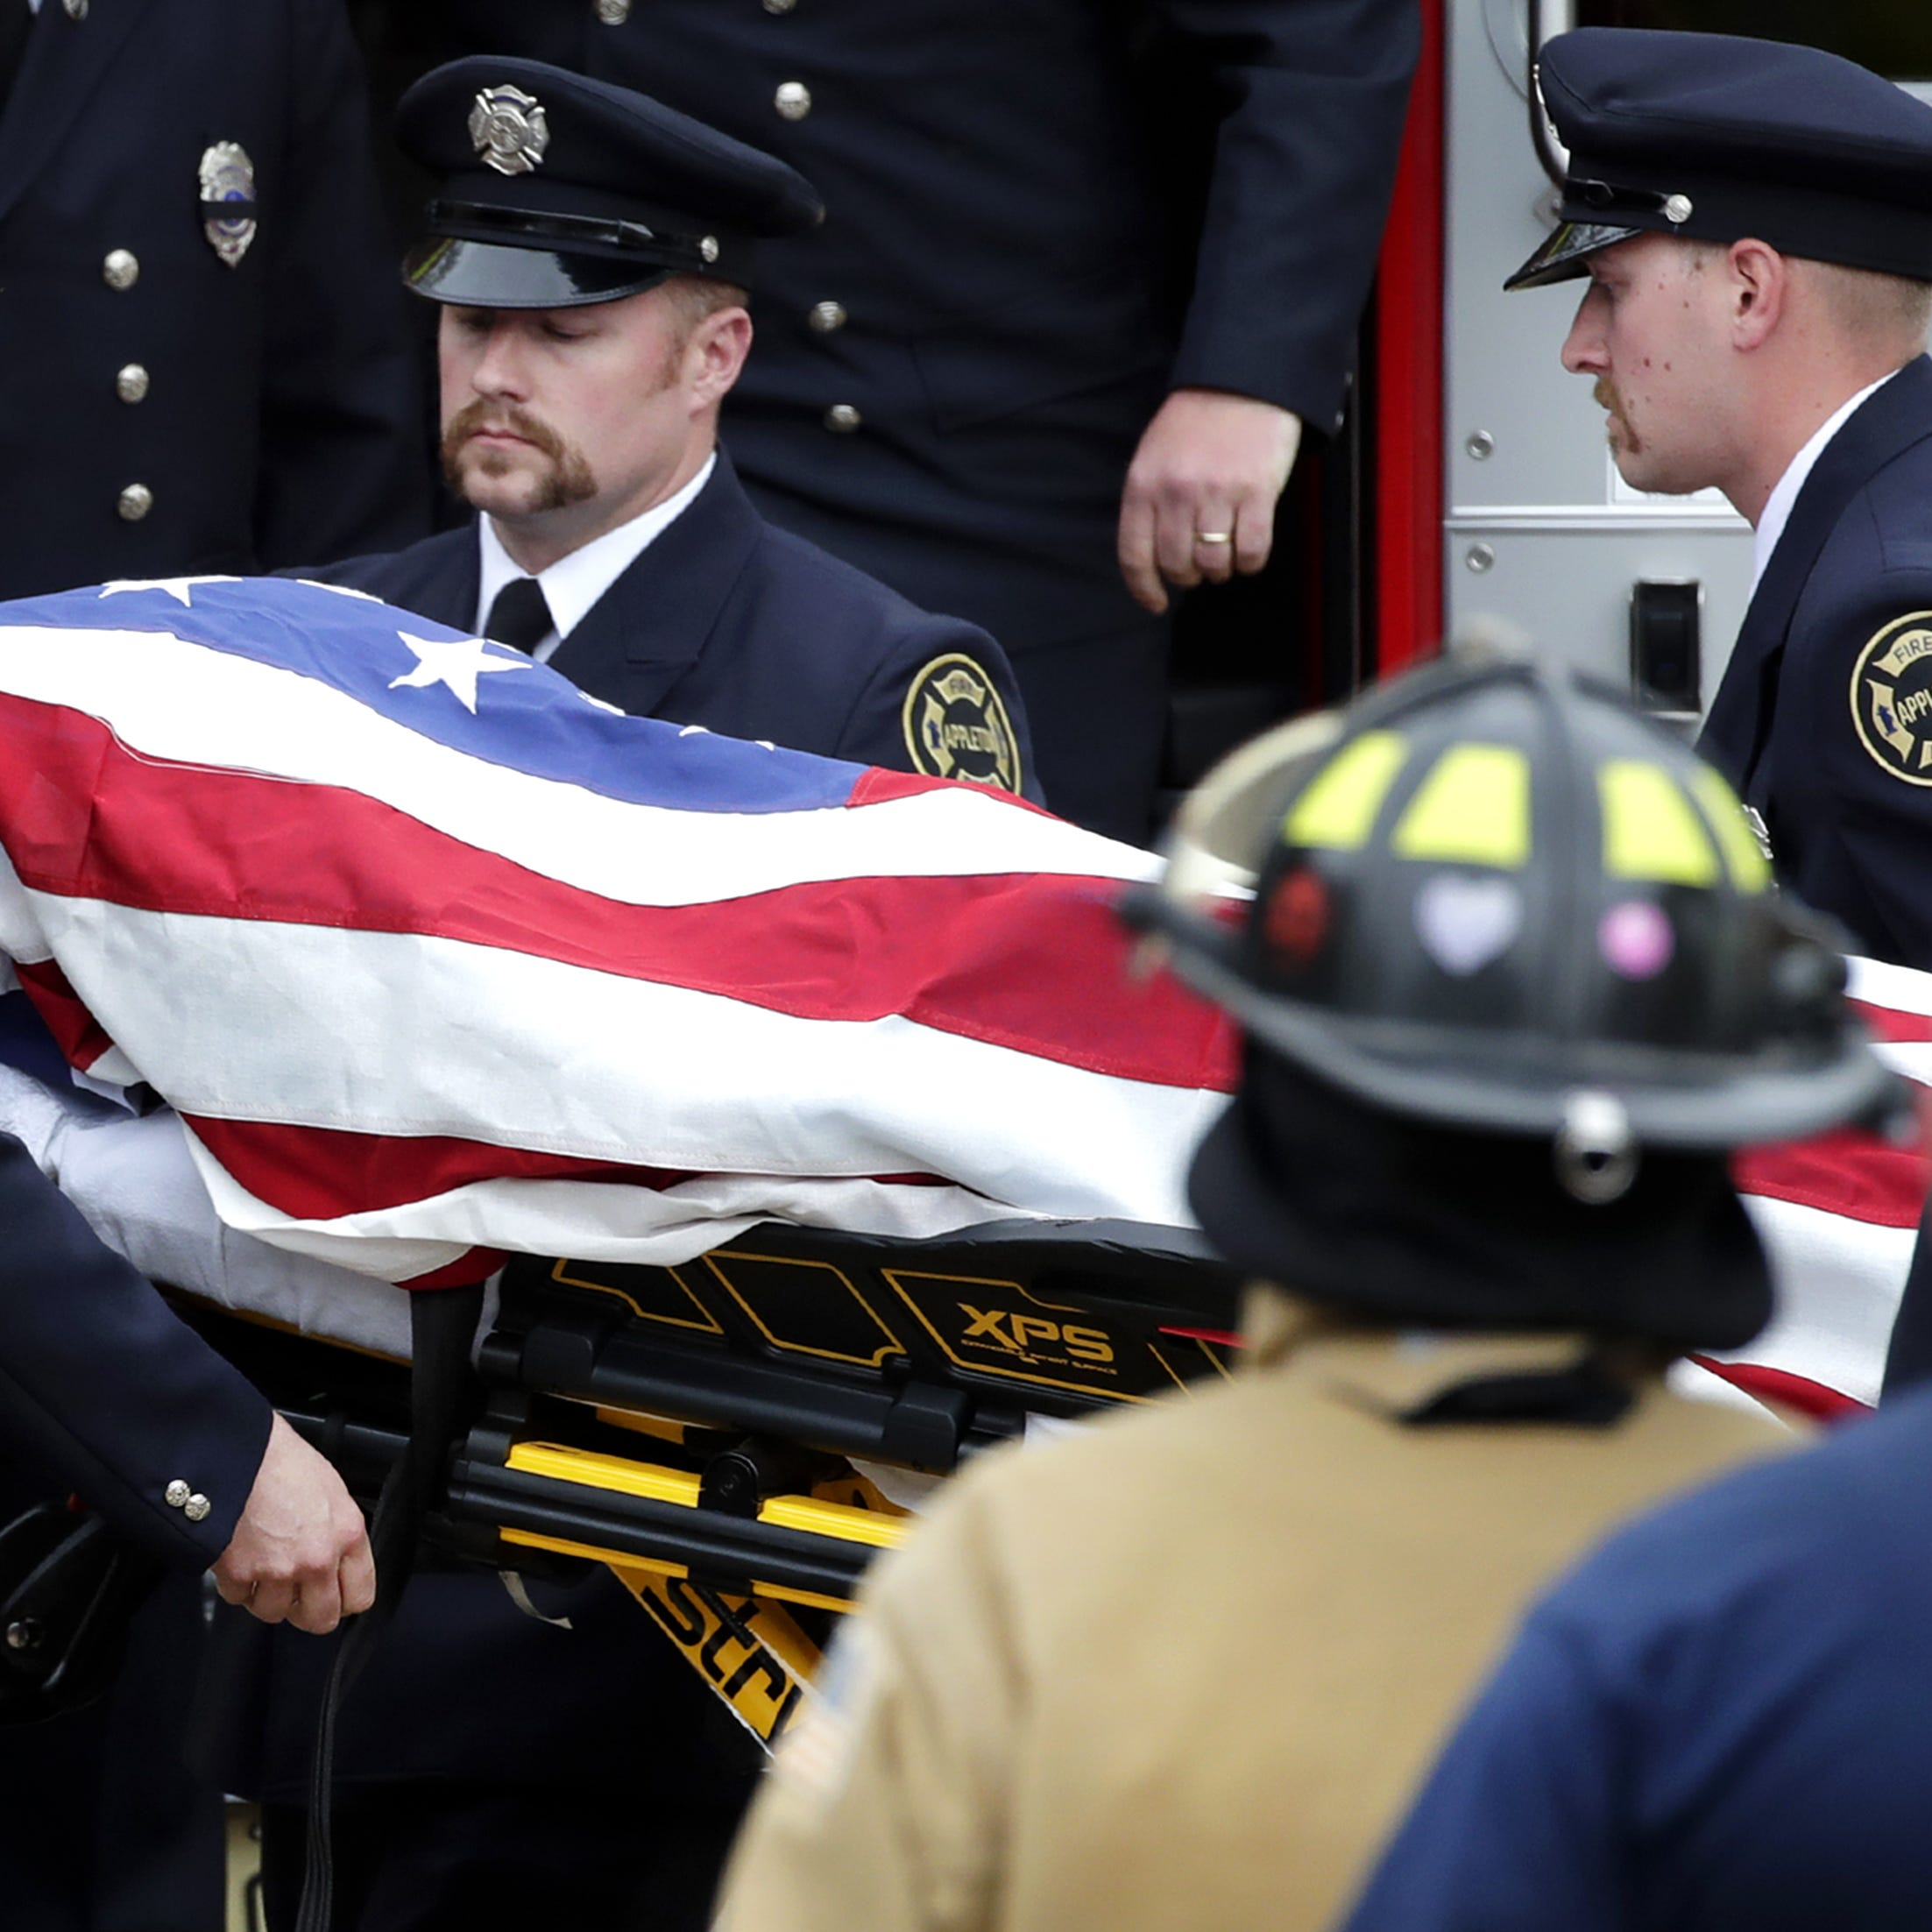 Appleton firefighter who died Wednesday is the fourth to have fallen and the first since 1933